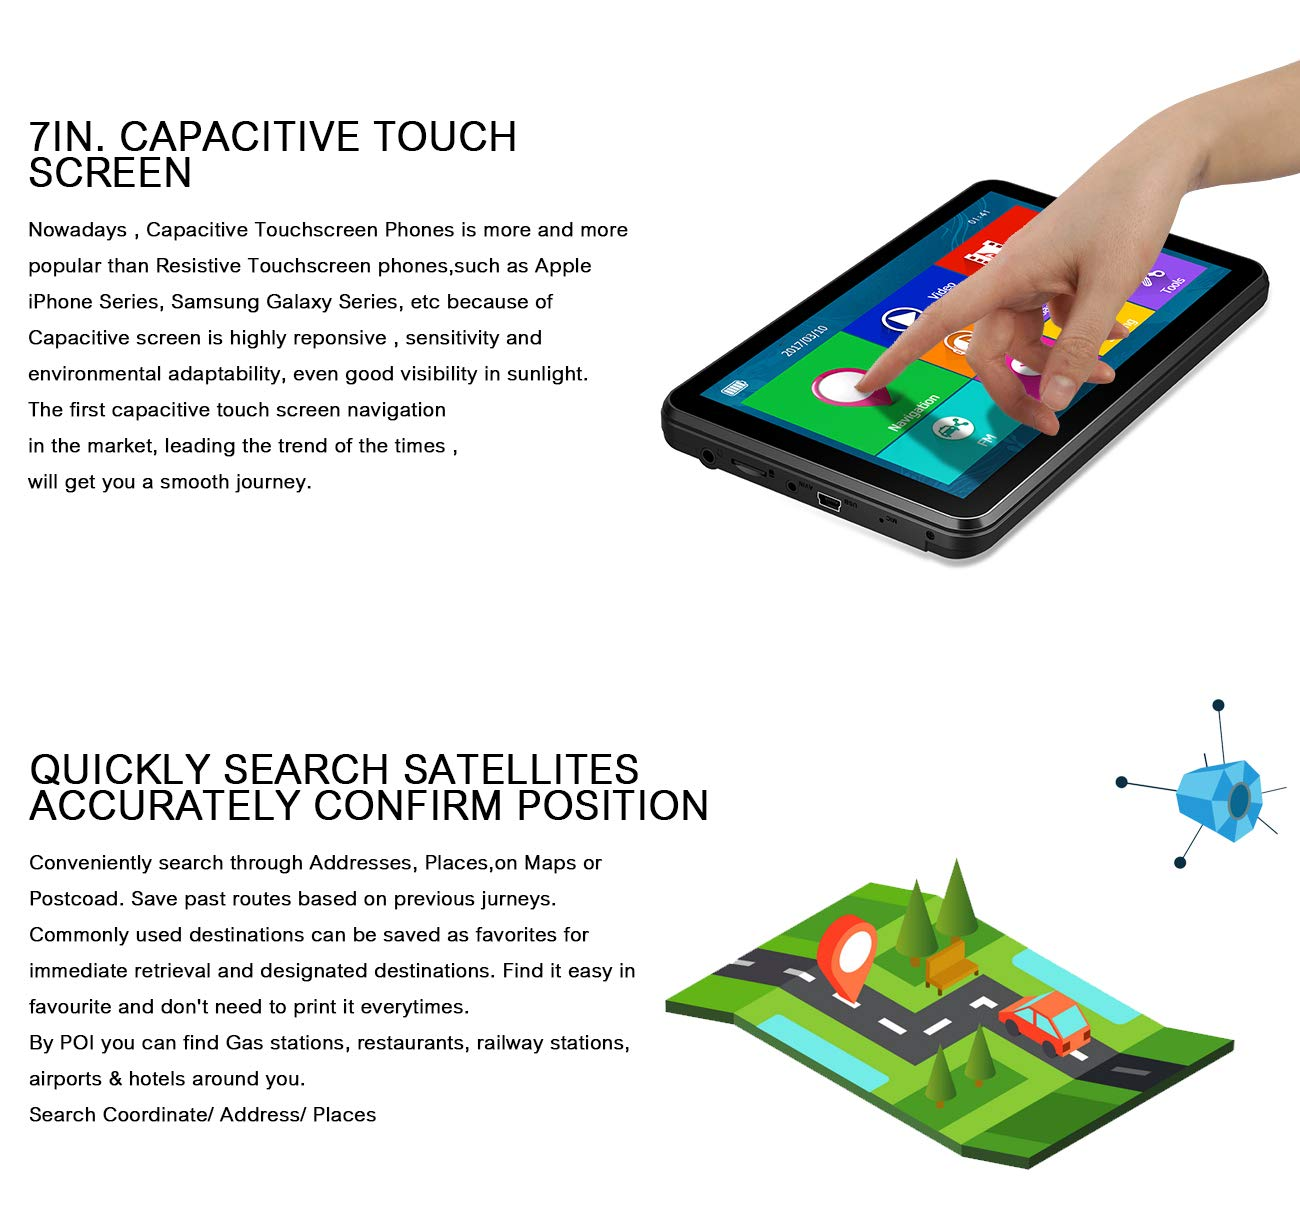 XGODY 884 SAT NAV 16GB 128MB GPS Navigation System Satellite Navigator 7 inch Capacitive Touch Screen Pre-loaded UK and EU Latest 2018 Maps Lifetime Free Update 884F+Sunshade